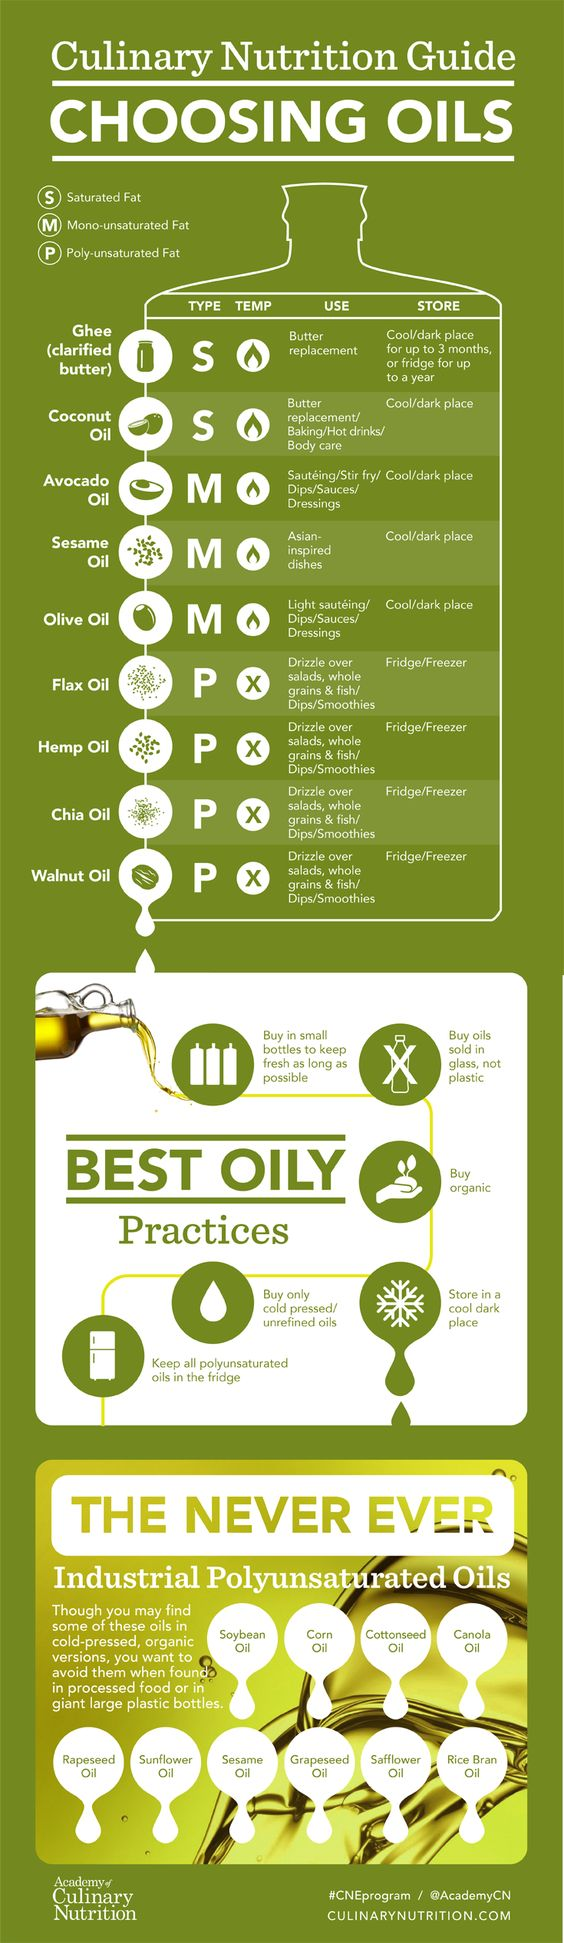 Guide Choosing Healthy Cooking Oils, Culinary Nutrition Guide